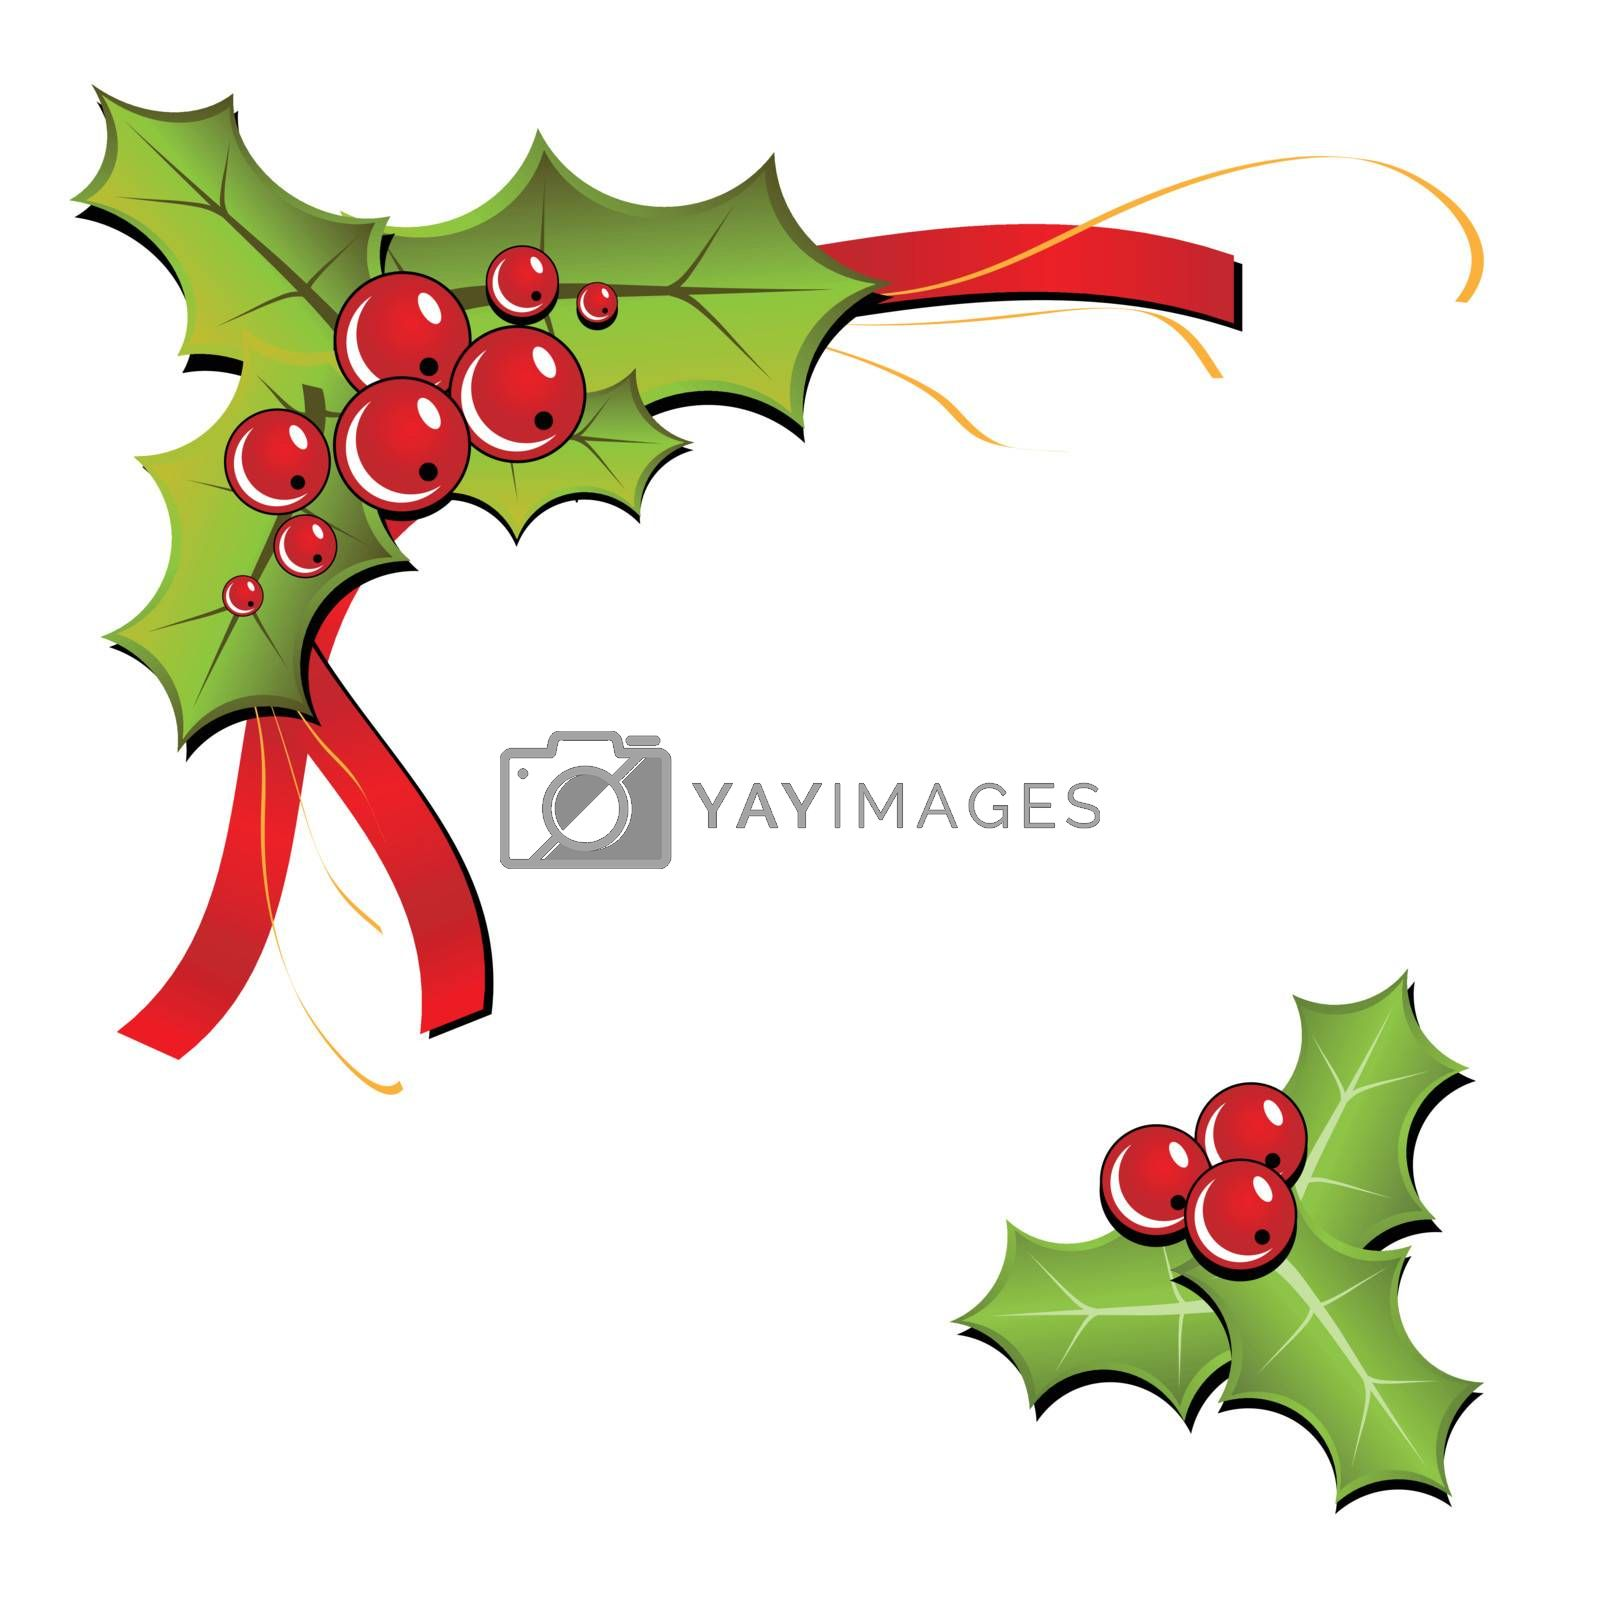 Royalty free image of Christmas Holly Illustration. by ajn